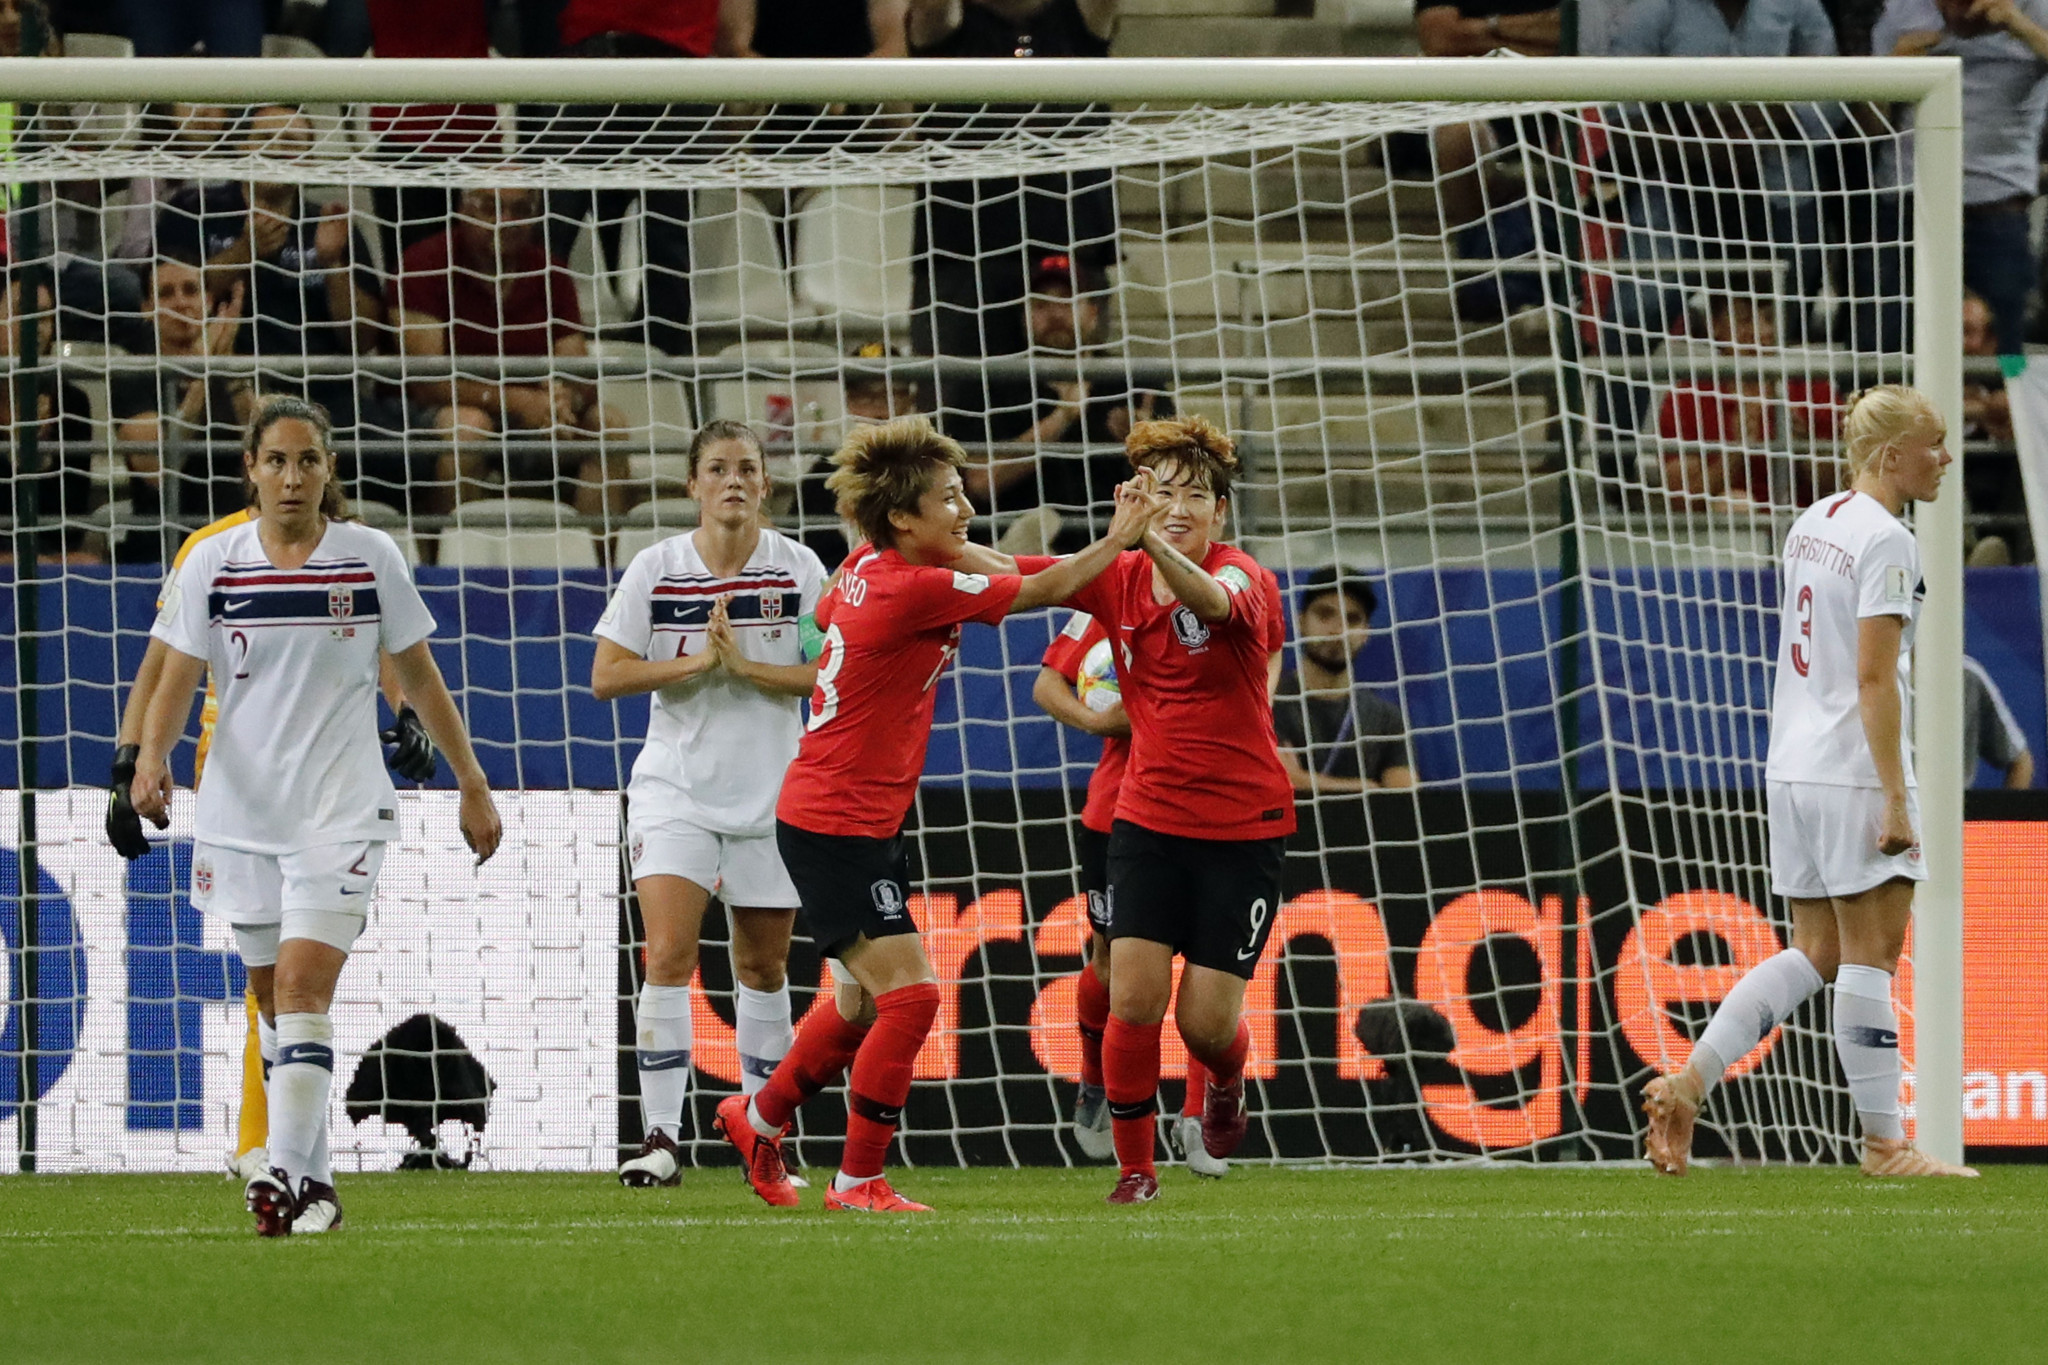 Yeo Min-ji, centre left, pulled one back for South Korea but it proved only a consolation ©Getty Images